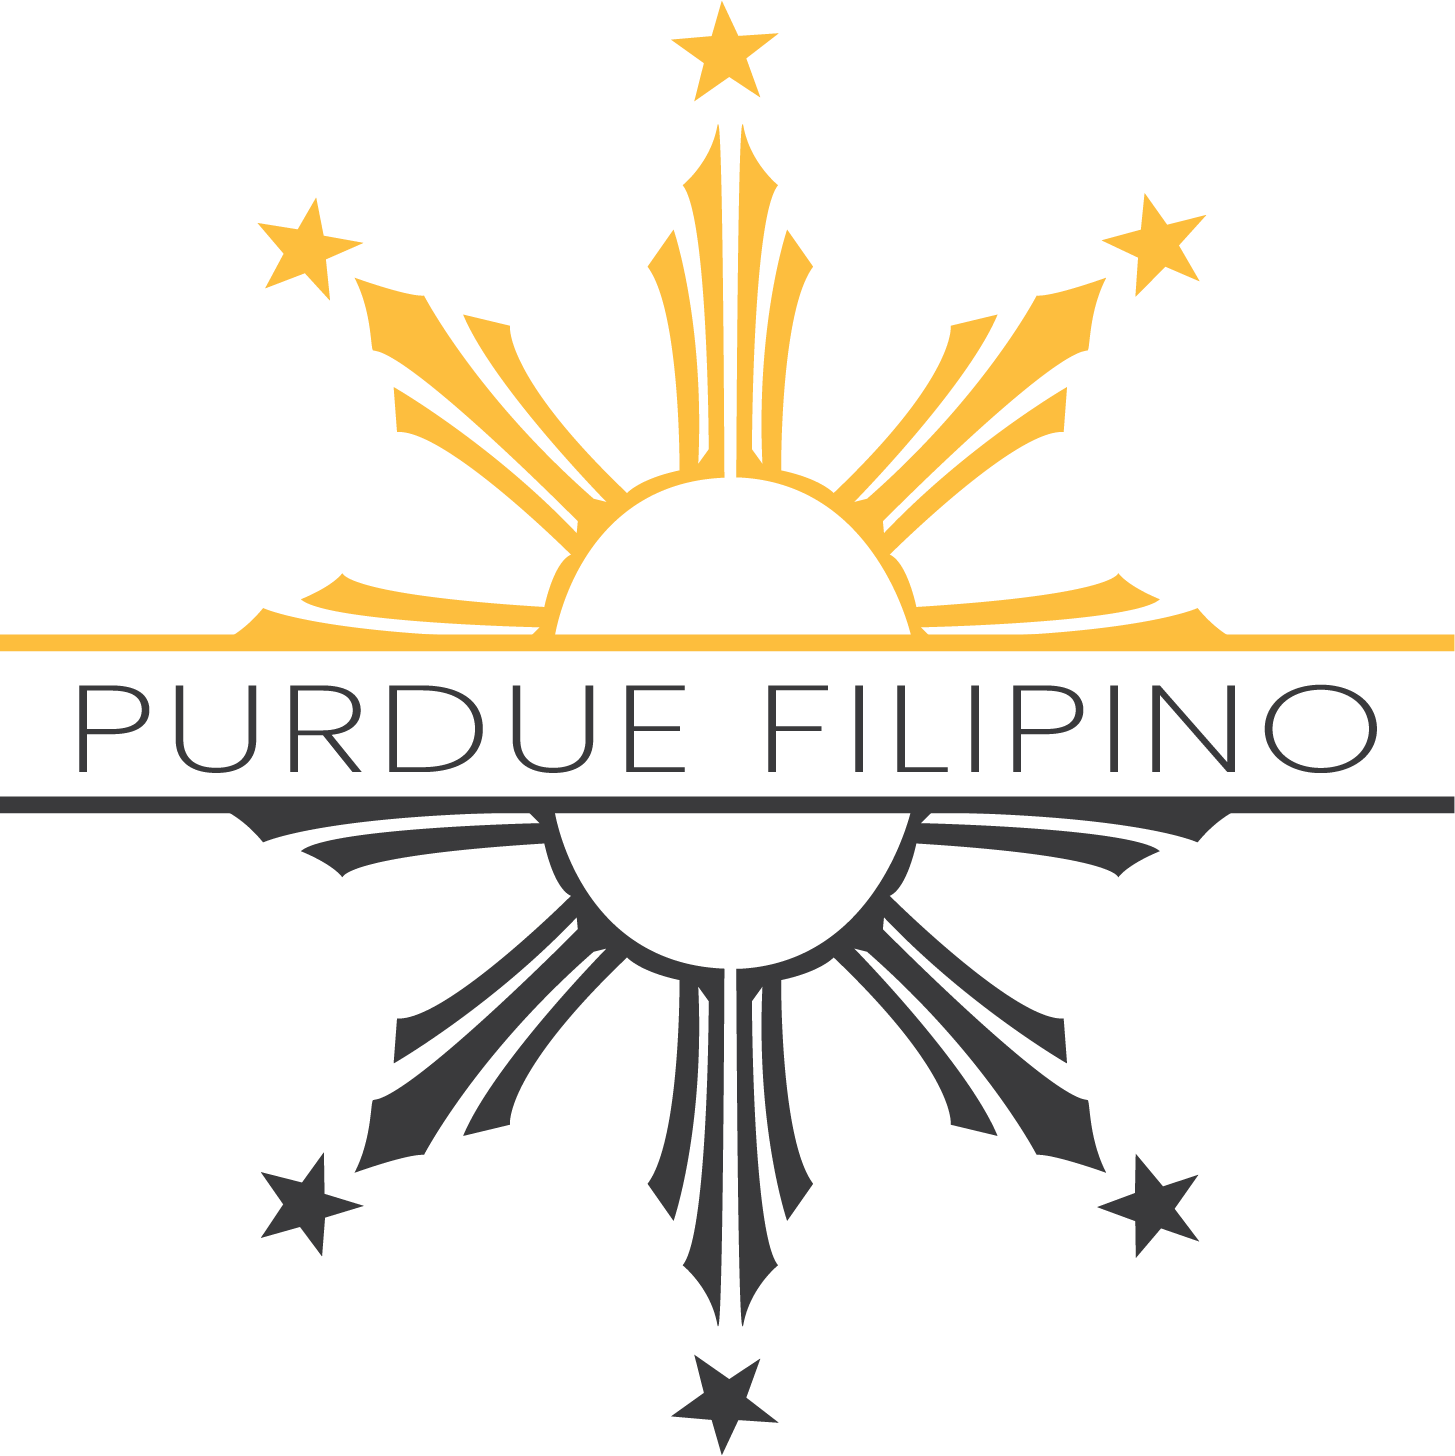 Purdue Filipino Association